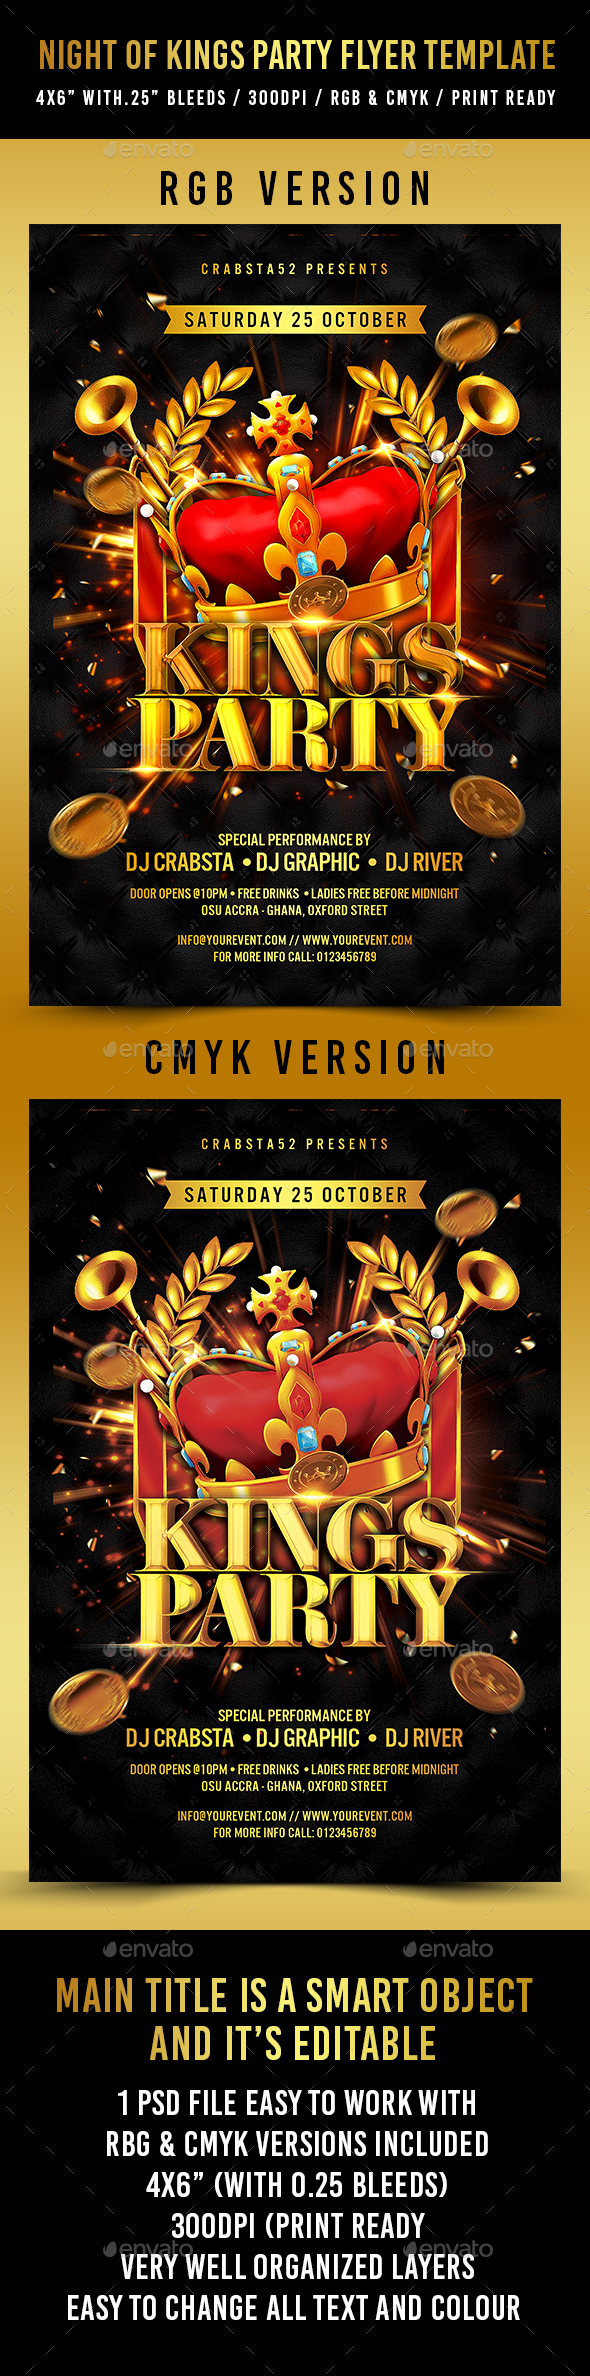 Night of Kings Party Flyer Template - Flyers Print Templates